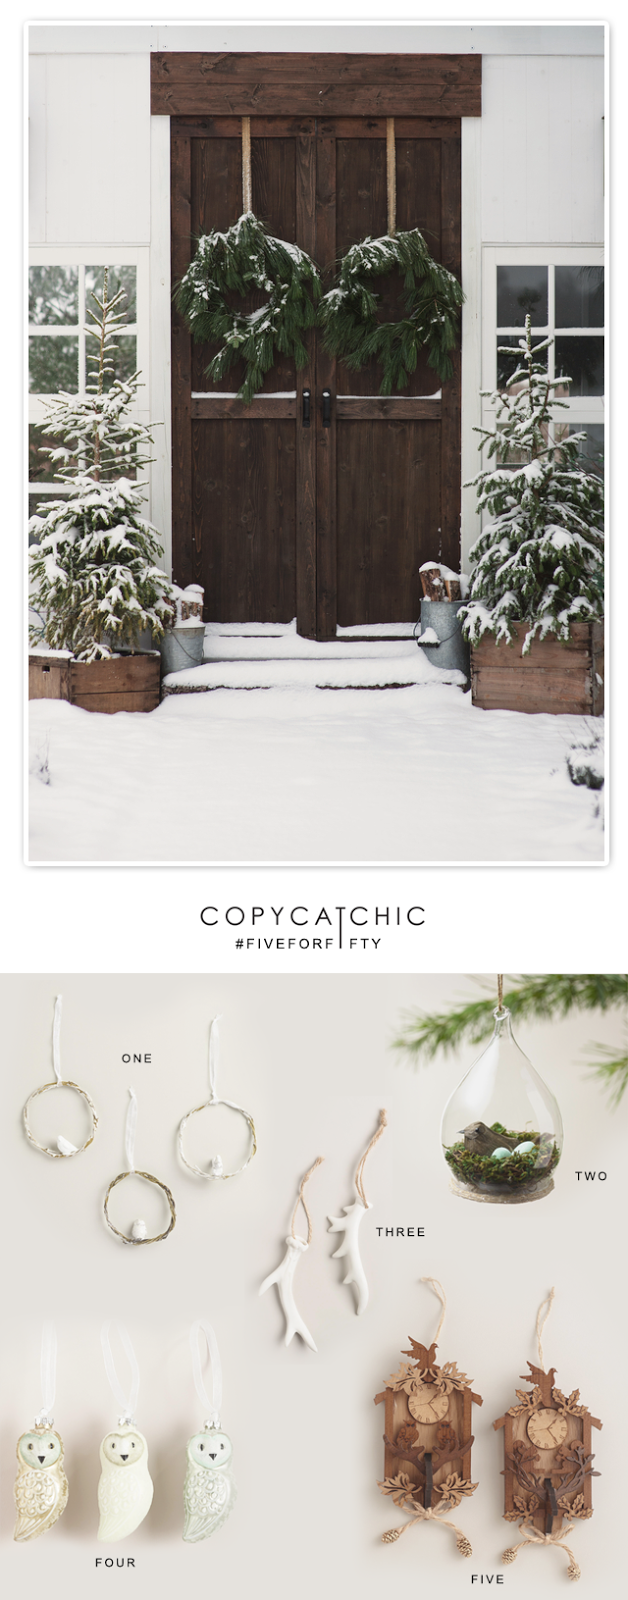 Copy Cat Chic #FiveforFifty Christmas Ornaments from World Market